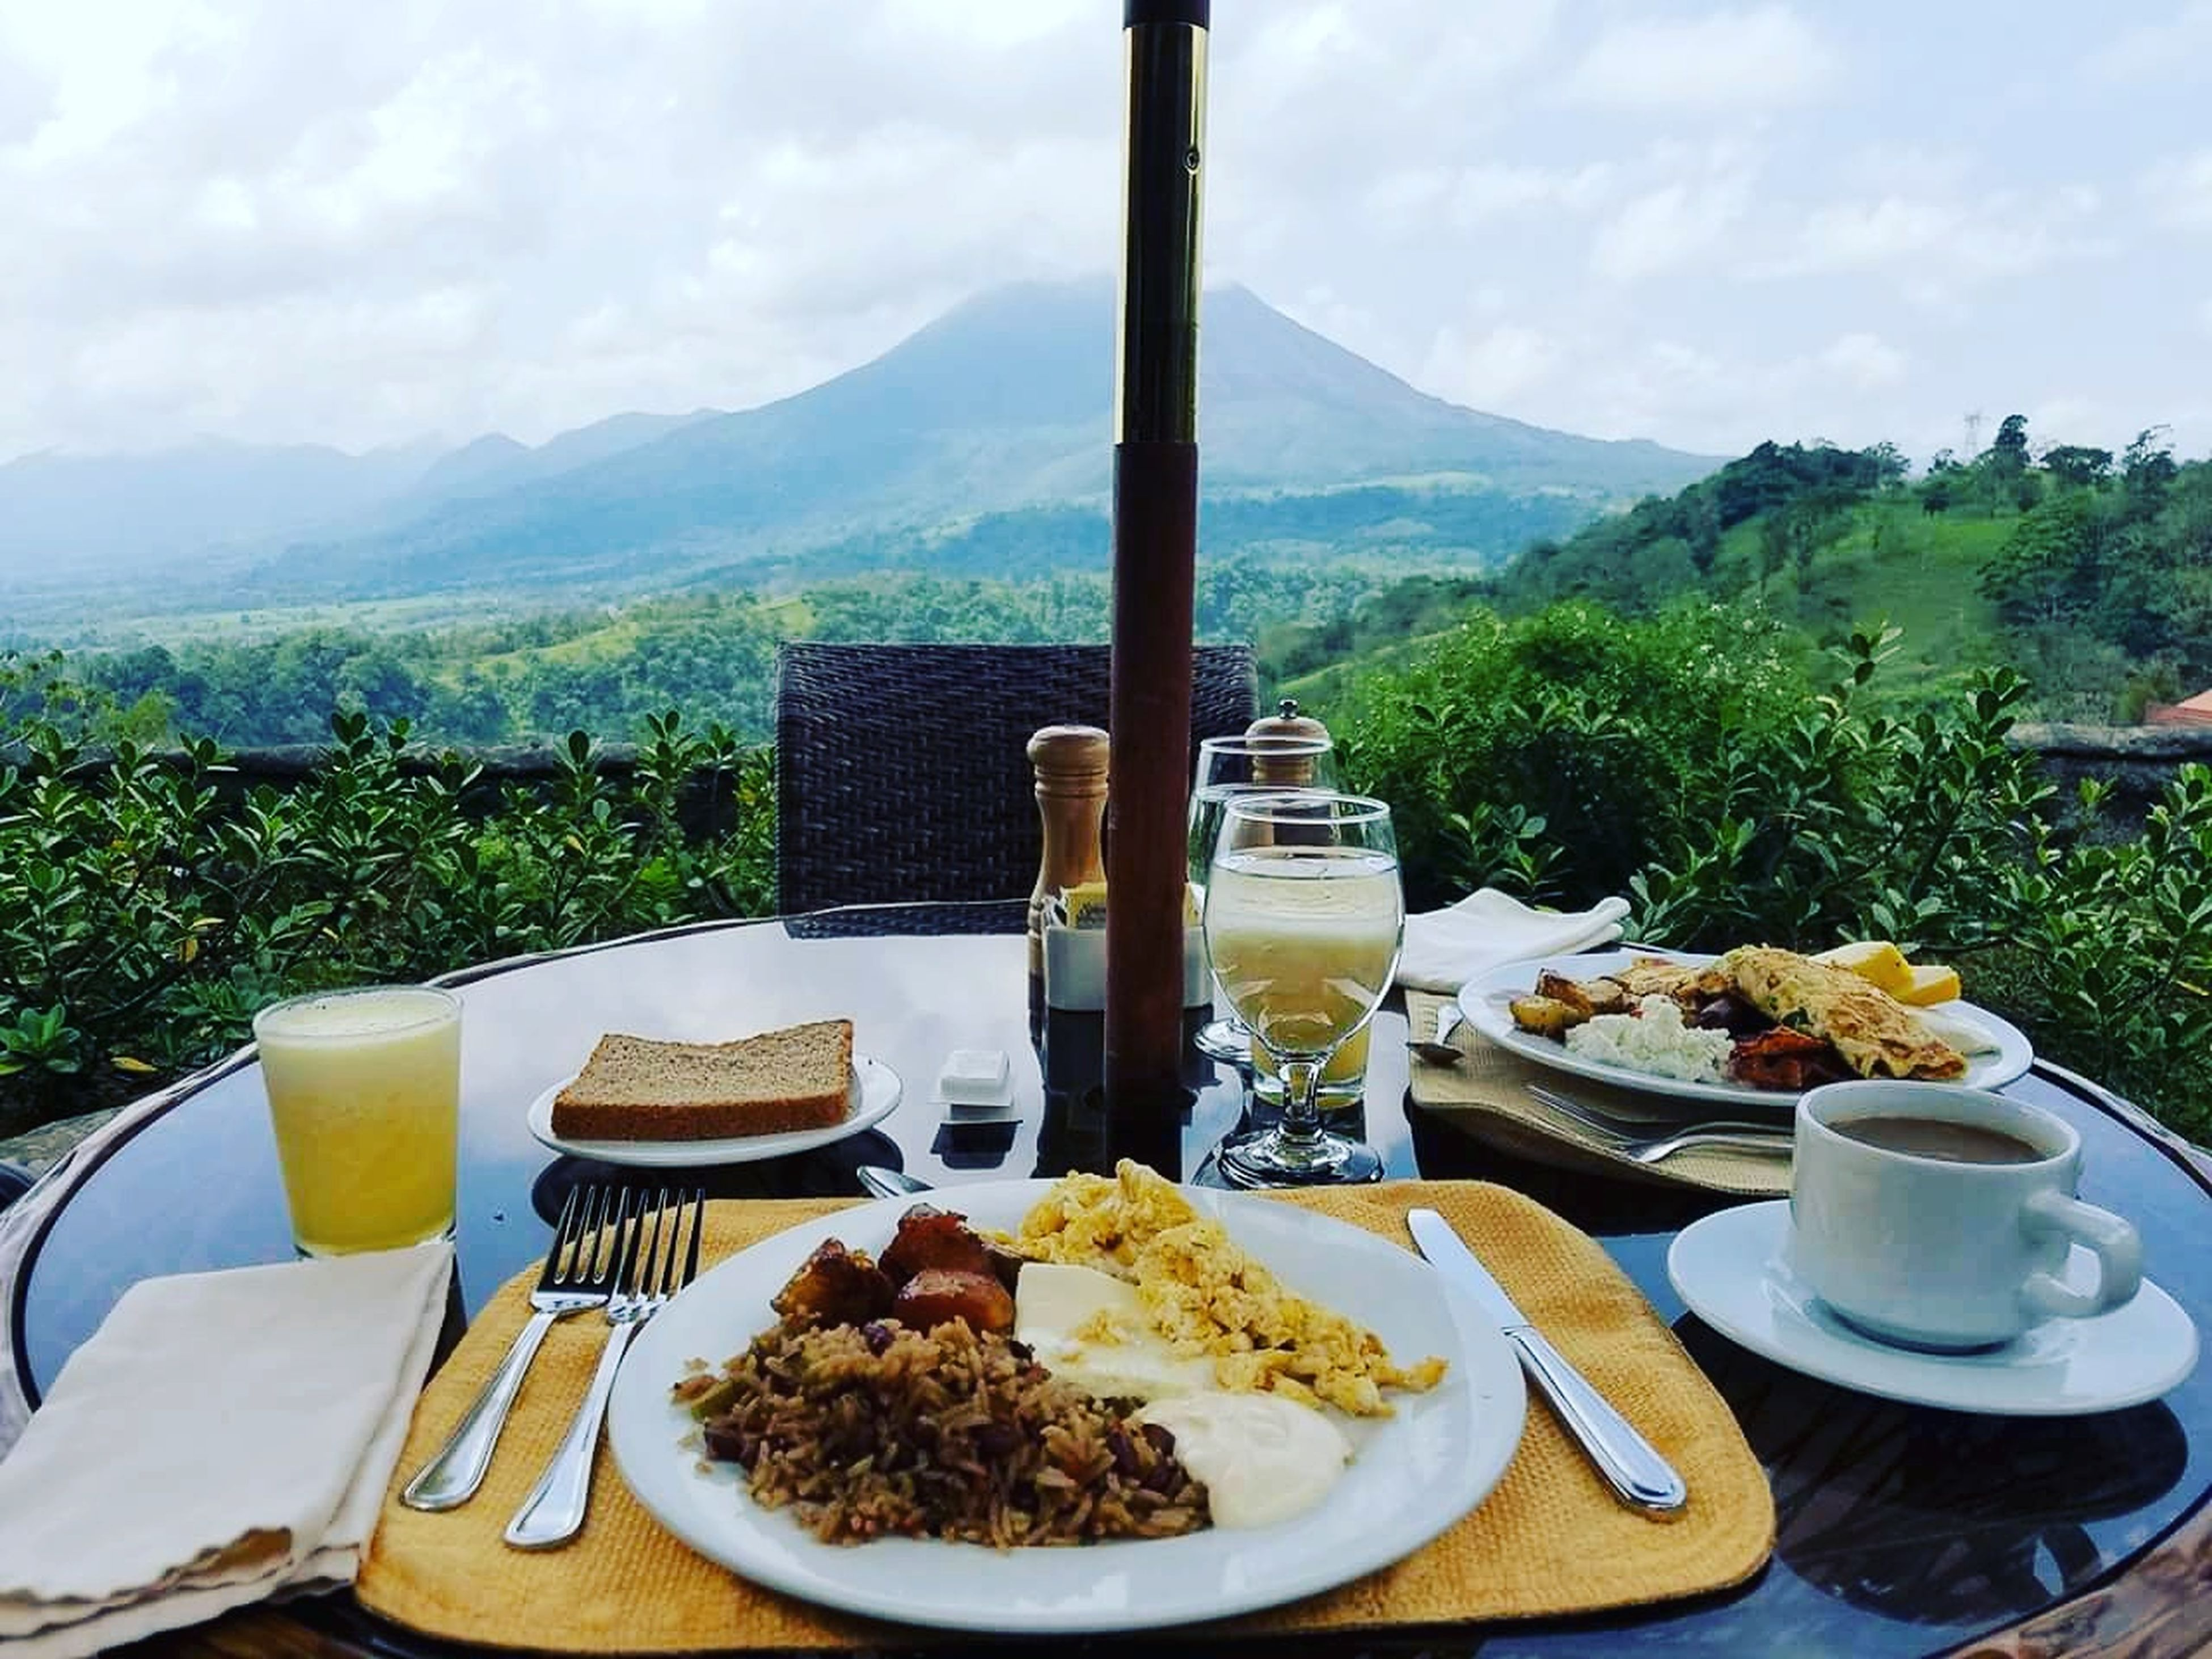 plate, food and drink, mountain, food, table, no people, freshness, day, serving size, mountain range, sky, ready-to-eat, tree, drink, outdoors, drinking glass, sweet food, temptation, landscape, healthy eating, nature, close-up